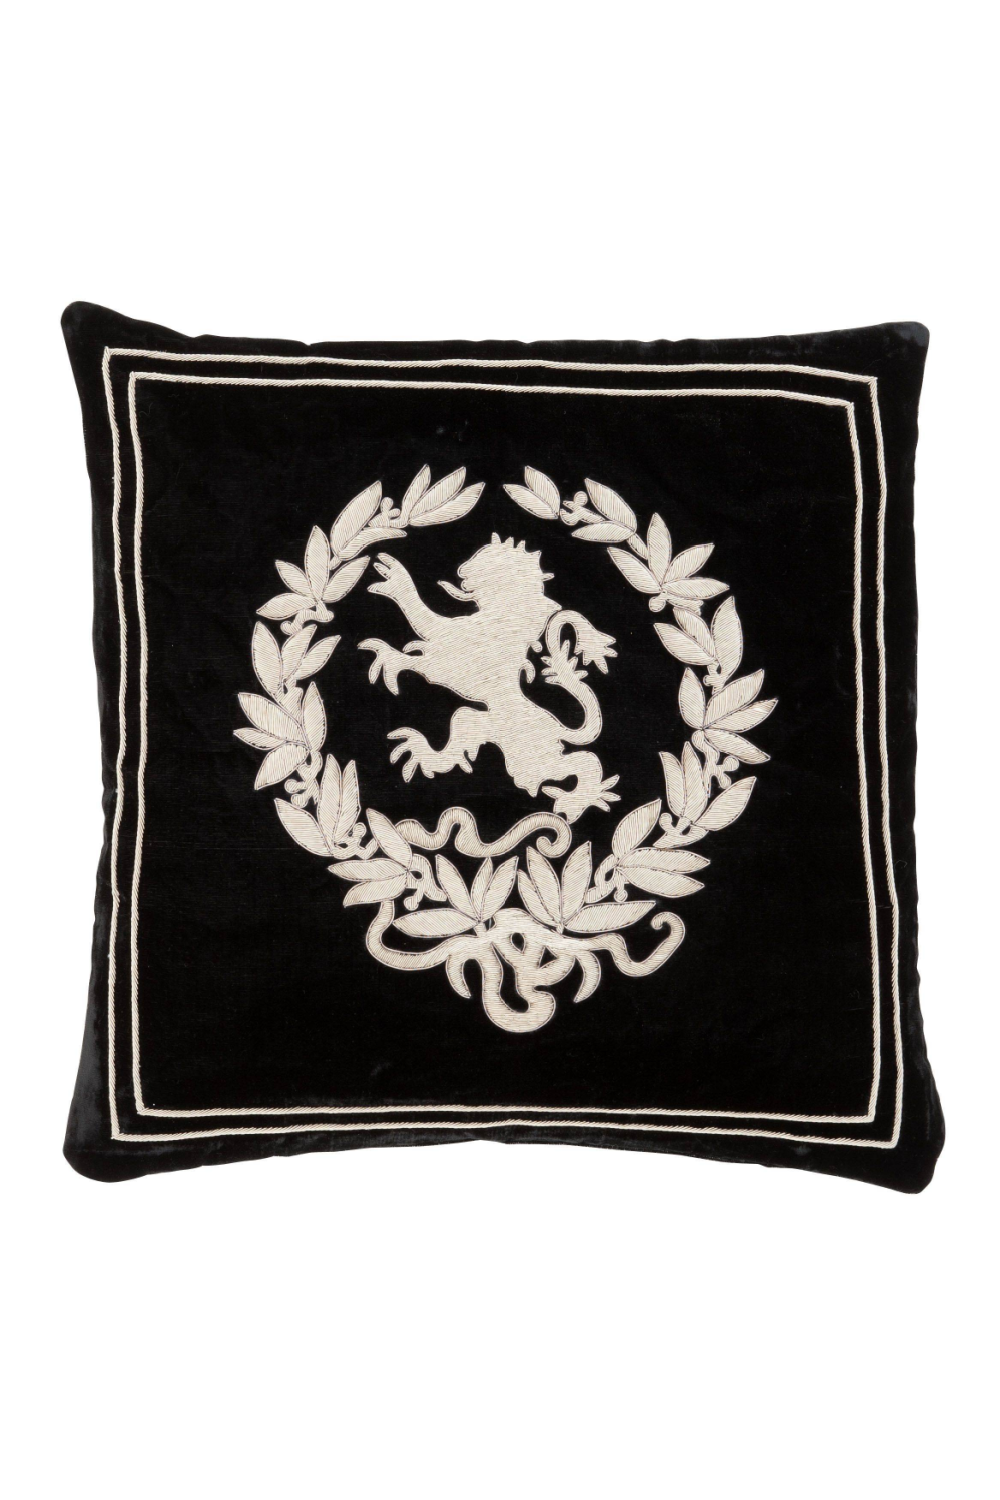 Black Velvet Pillow | Eichholtz Baronesa - S | OROA Luxury Furniture